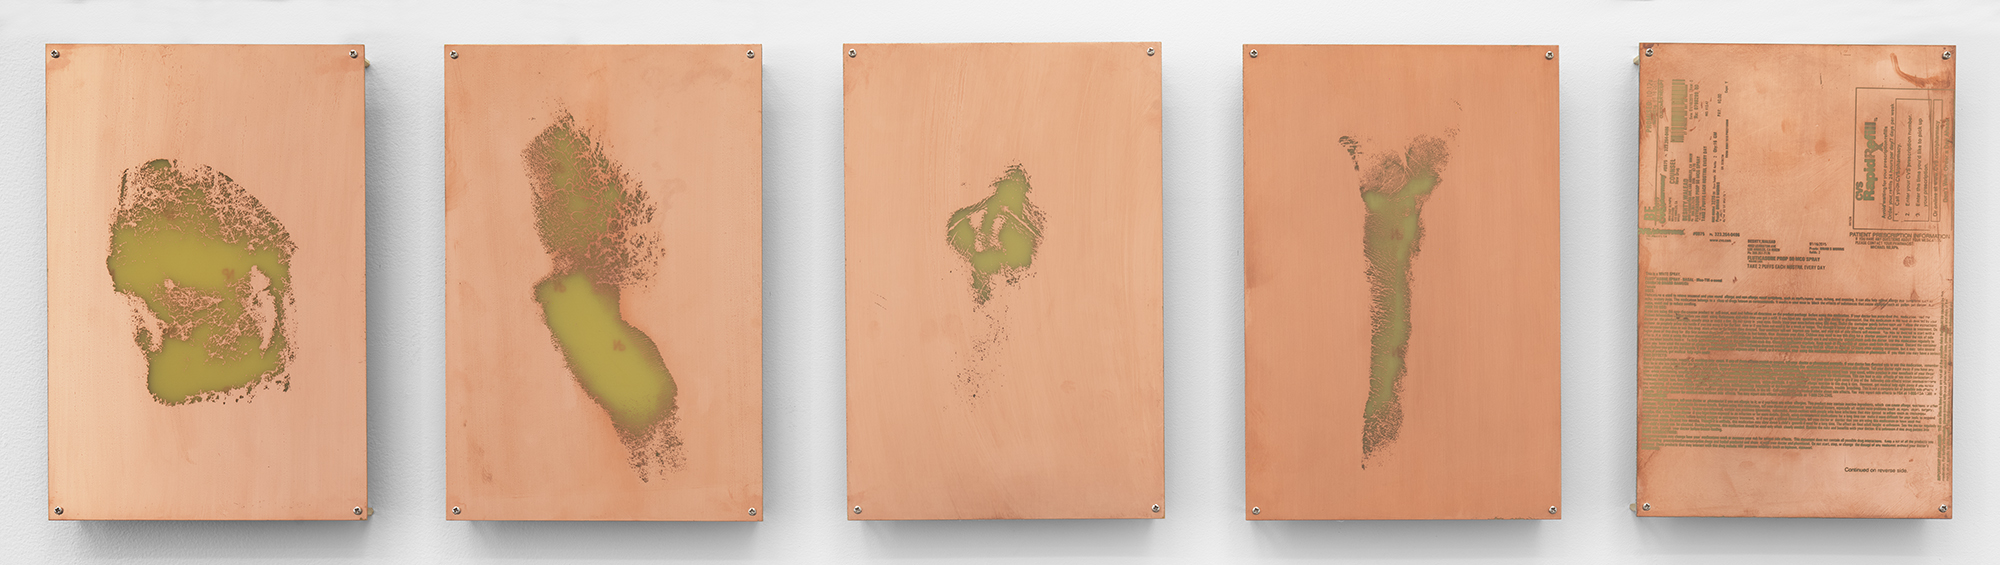 Body Print (Popliteal Fossa, Left Antebrachium, Right Antebrachium, Right Carpal and Attending Soft Tissues, Fluticasone Prop 50 mcg Spray)    2017   Etched copper-clad FR-4 glass-reinforced epoxy laminate board  12 x 8 inches each, 5 parts   Body Prints, 2017–